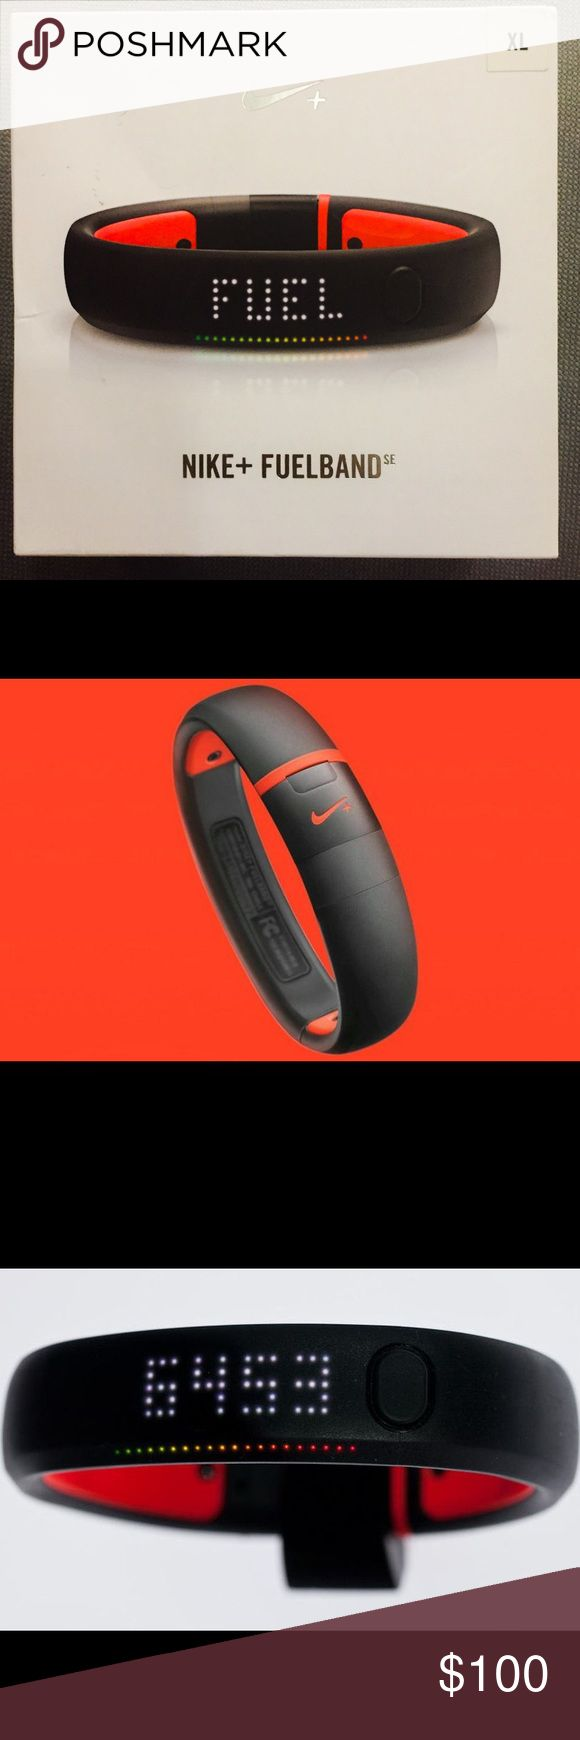 Brand New Nike Fuel Band in XL. Brand New Nike Fuel Band SE. It's an XL and color is black and red. Never used. Brand New In Box with tags. **** Brand New**** No Trades***** Nike Other